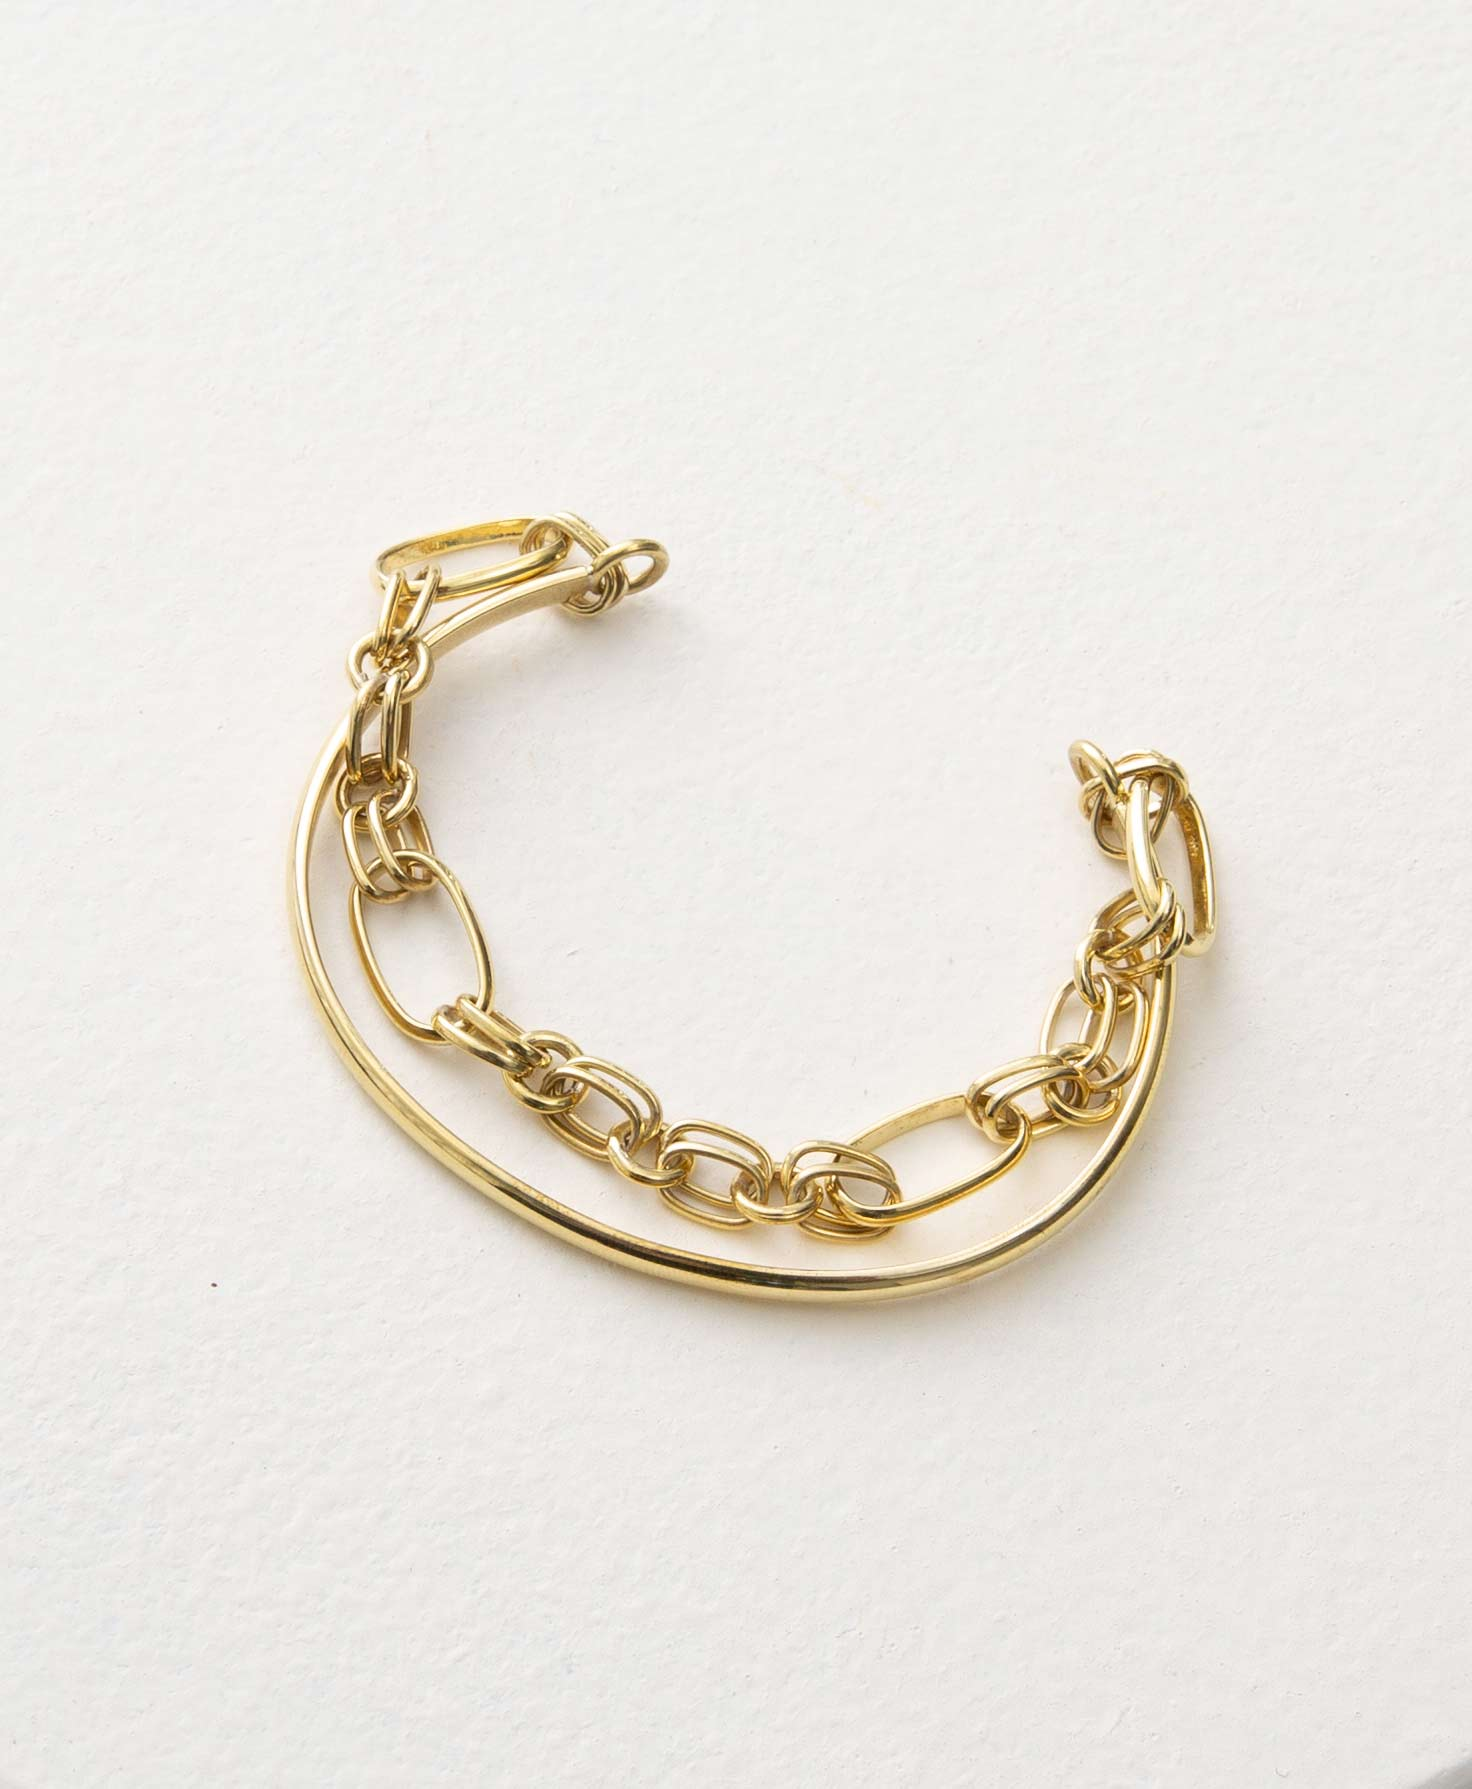 The Shindig Bracelet sits on a white platform. It is made of shining brass. It is a cuff-style bracelet with an opening in the back where it can be slid onto the wrist. A thin brass cuff is layered beneath a chunky brass chain with circular and oval-shaped links. This gives the bracelet a 2-in-1 appearance.